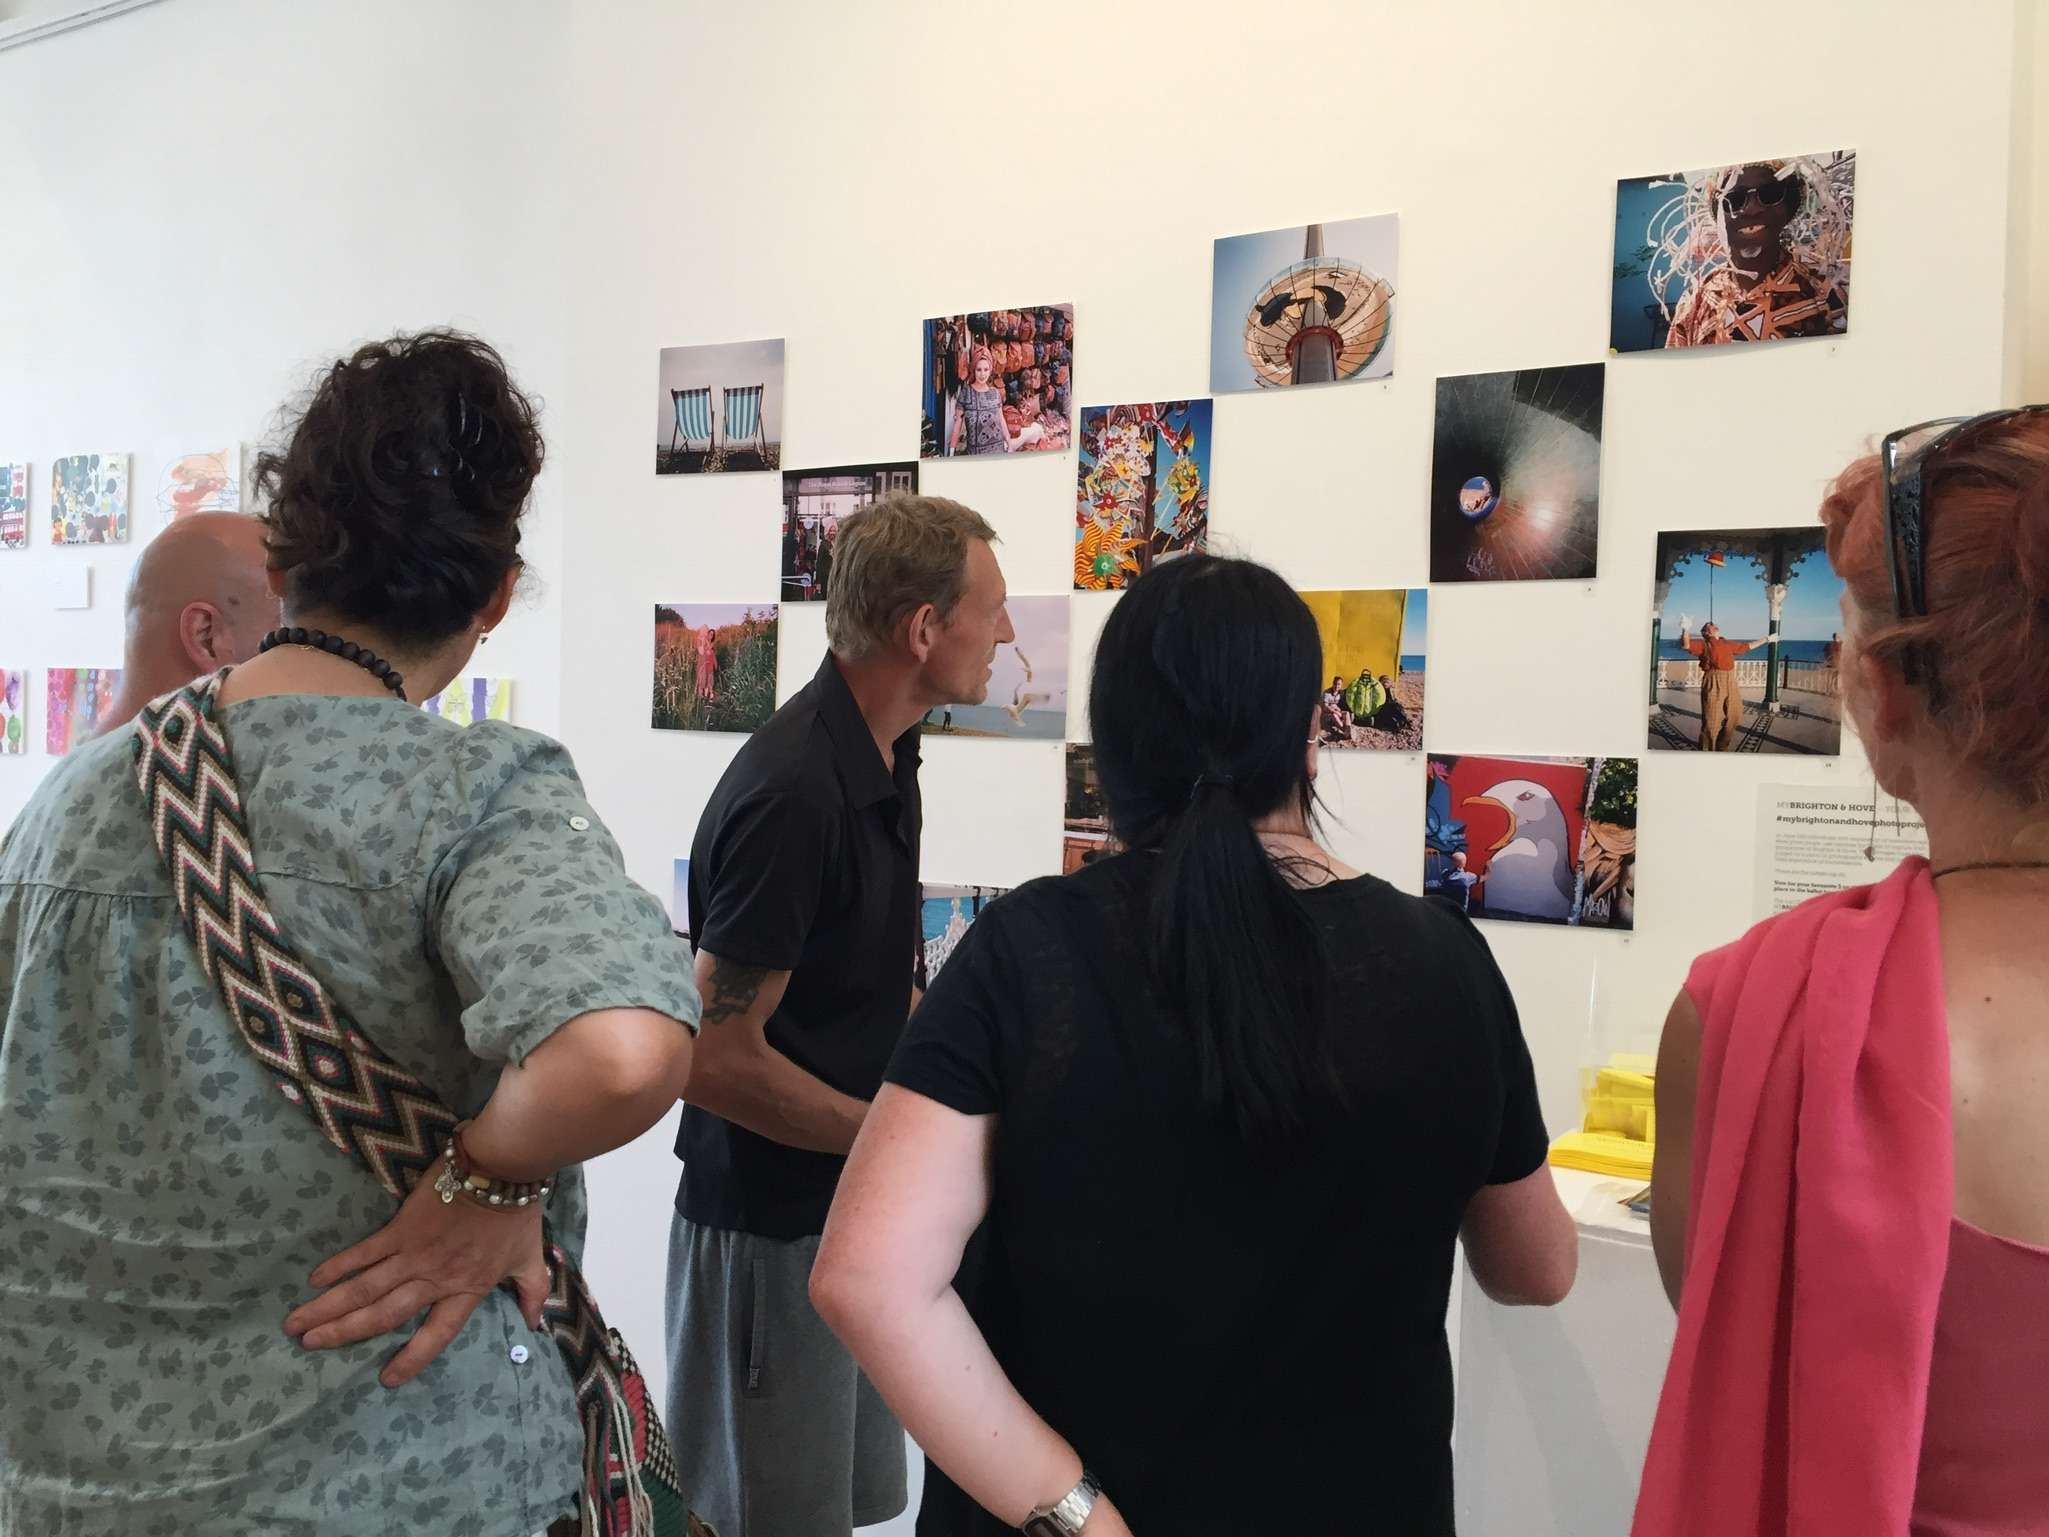 Stuart, a MYBRIGHTON & HOVE Photographer discussing his work at the Public Vote exhibition at ONCA Gallery in July 2018